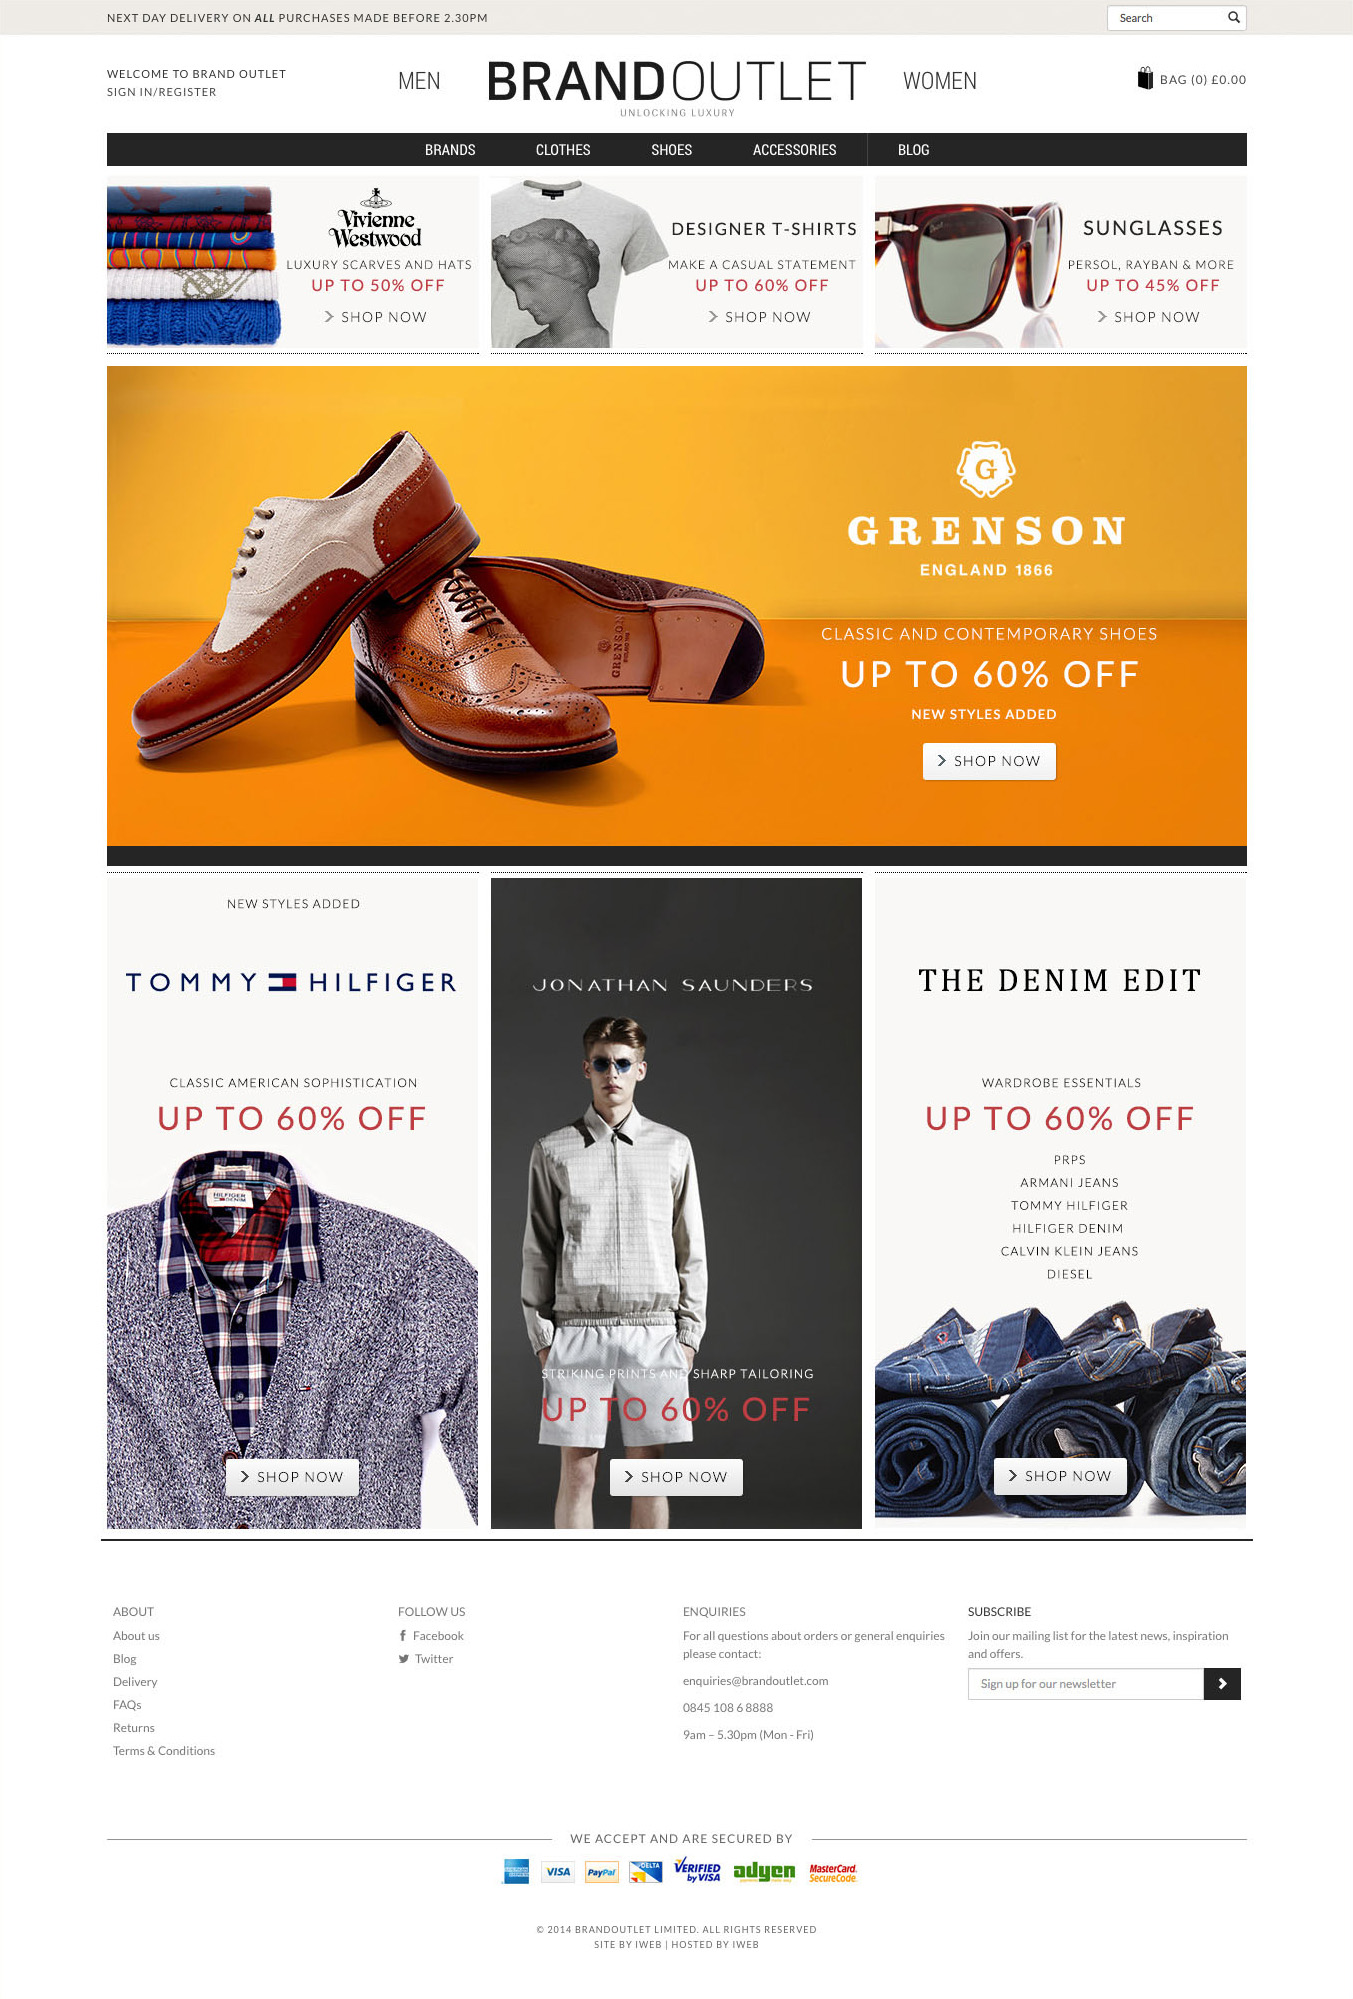 1brand-outlet-landing-page